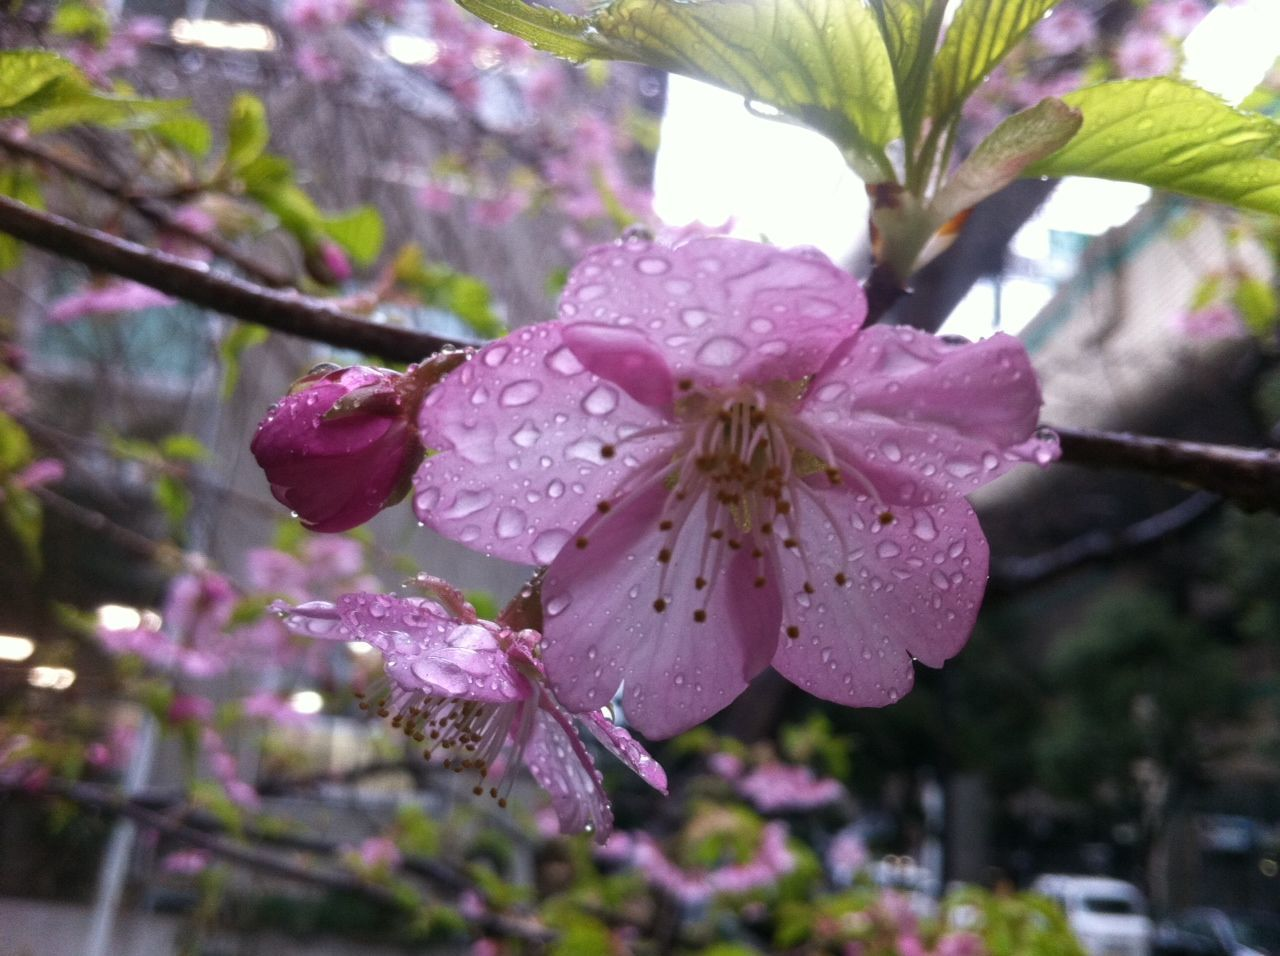 Close-Up Of Raindrops On Pink Cherry Blossoms Outdoors